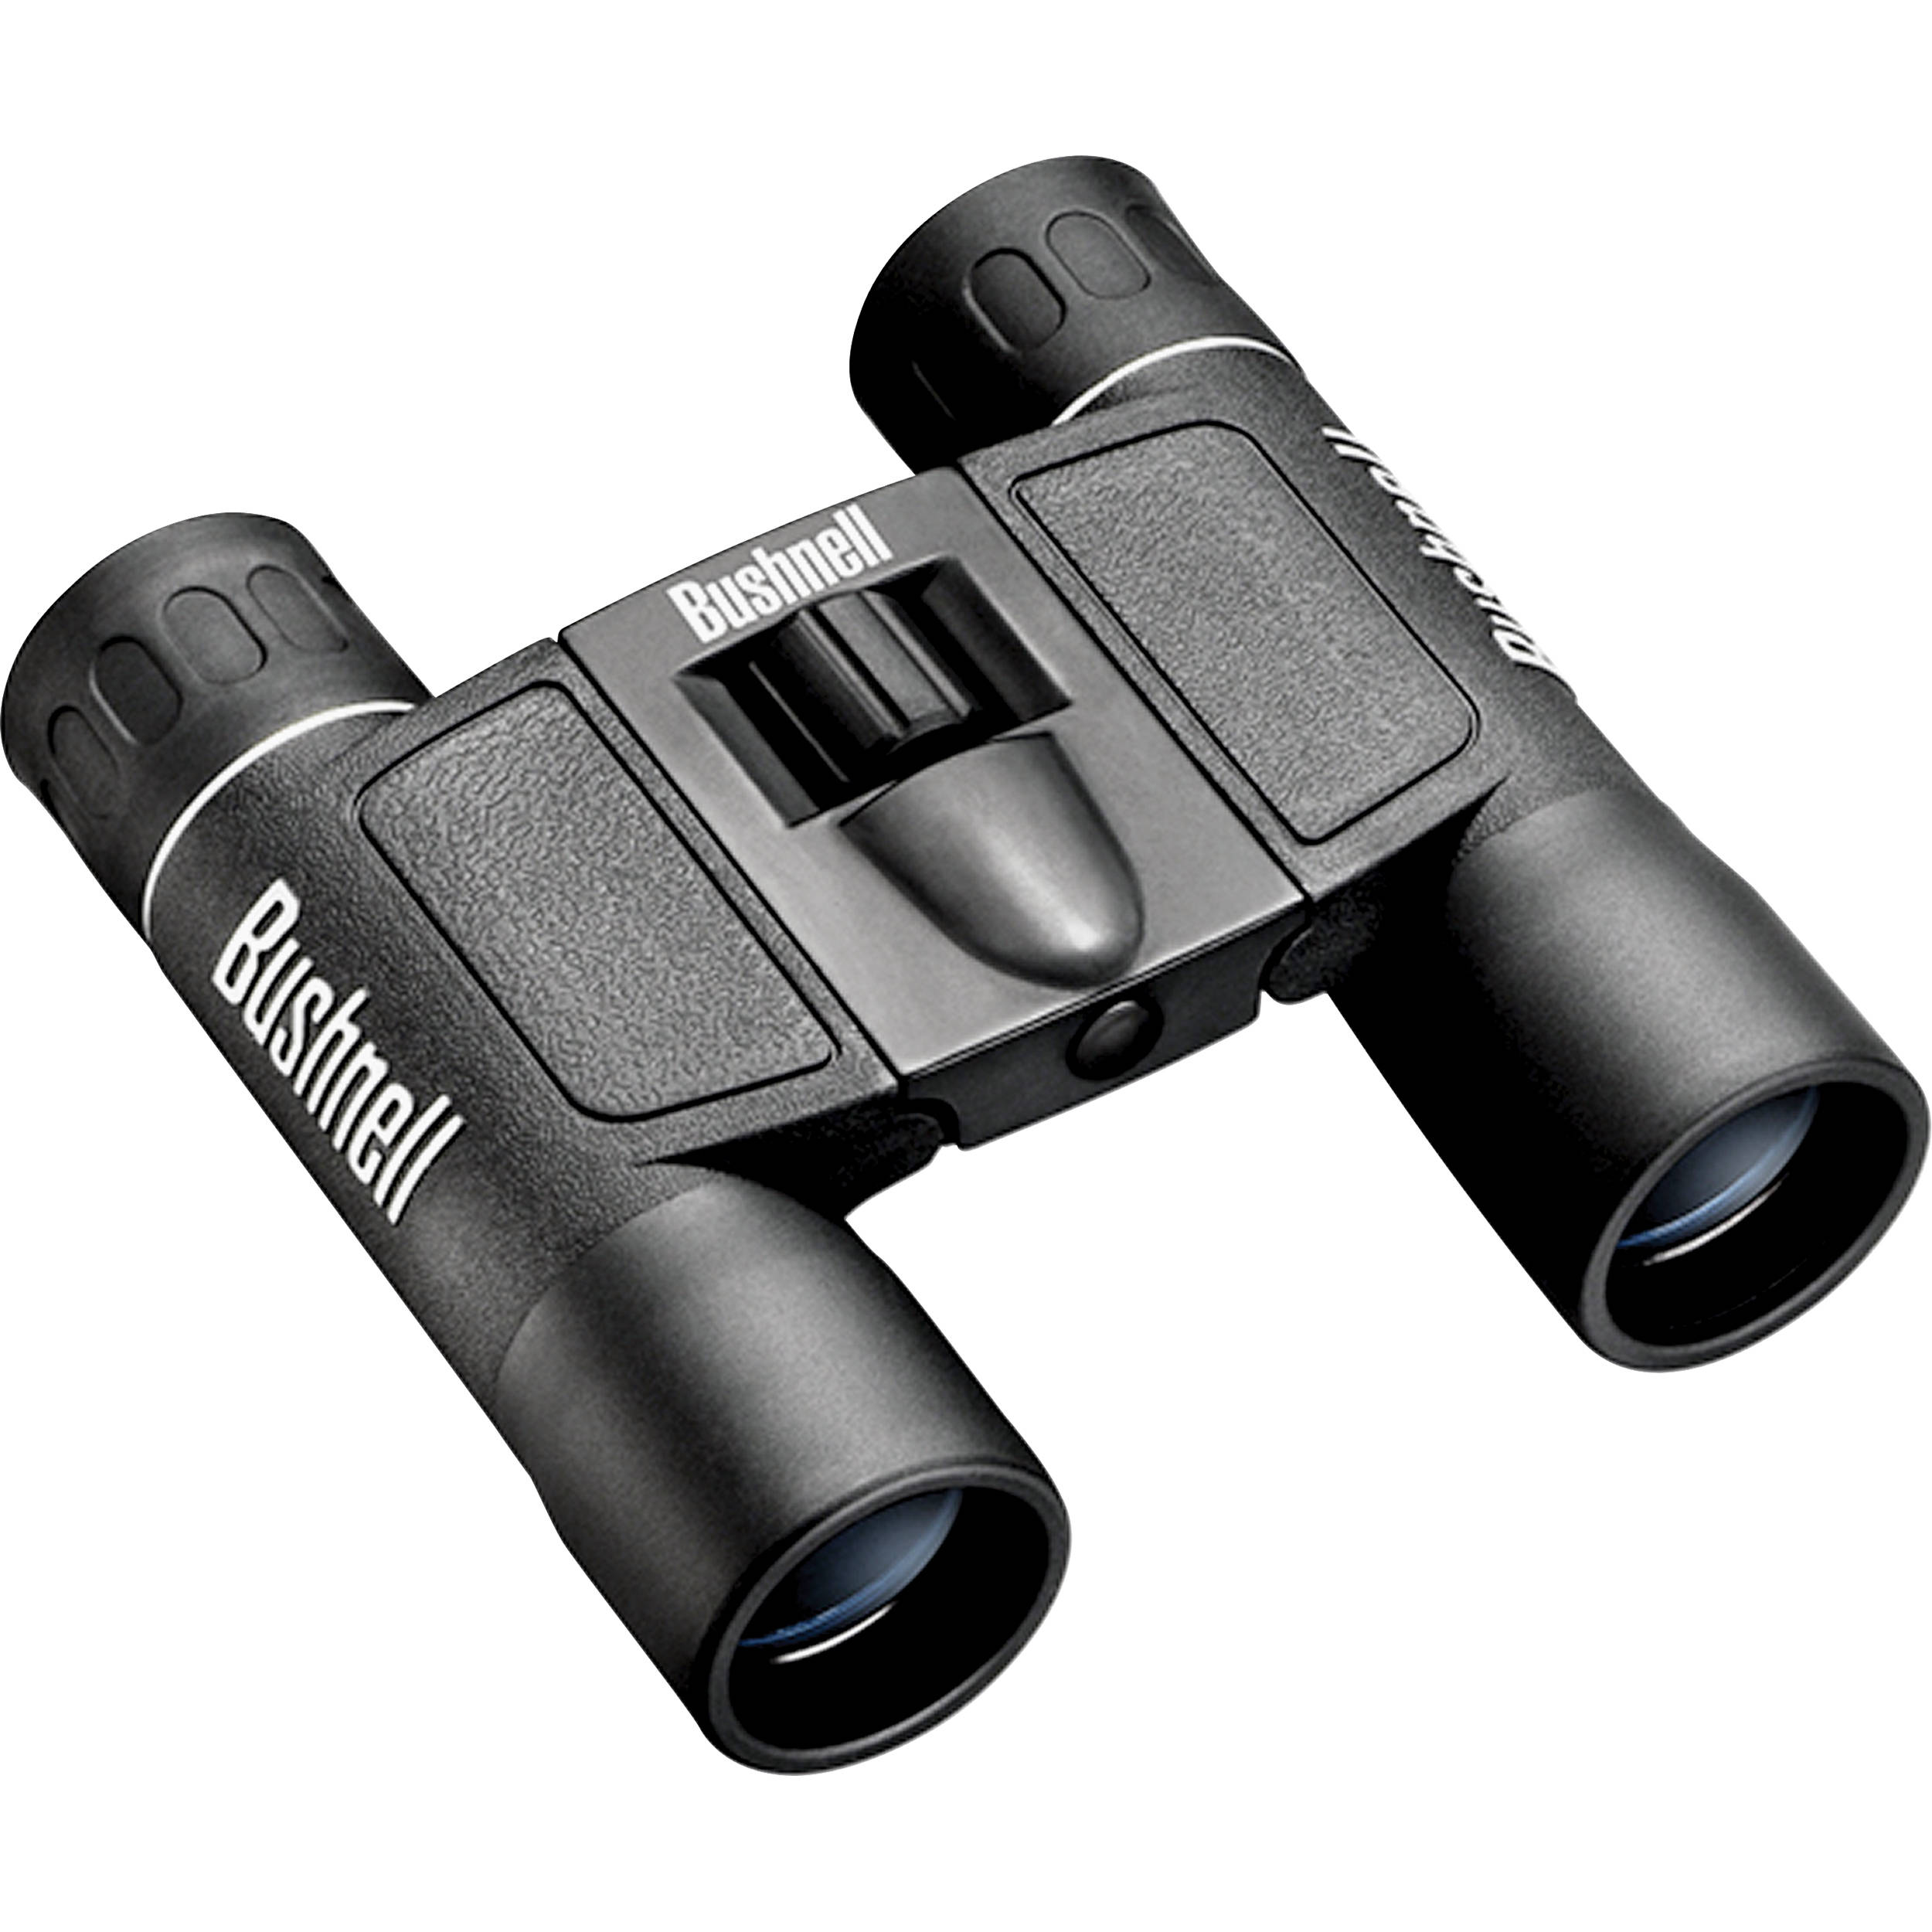 Bushnell 10x25 Powerview Binocular (Black) 132516 B&H Photo